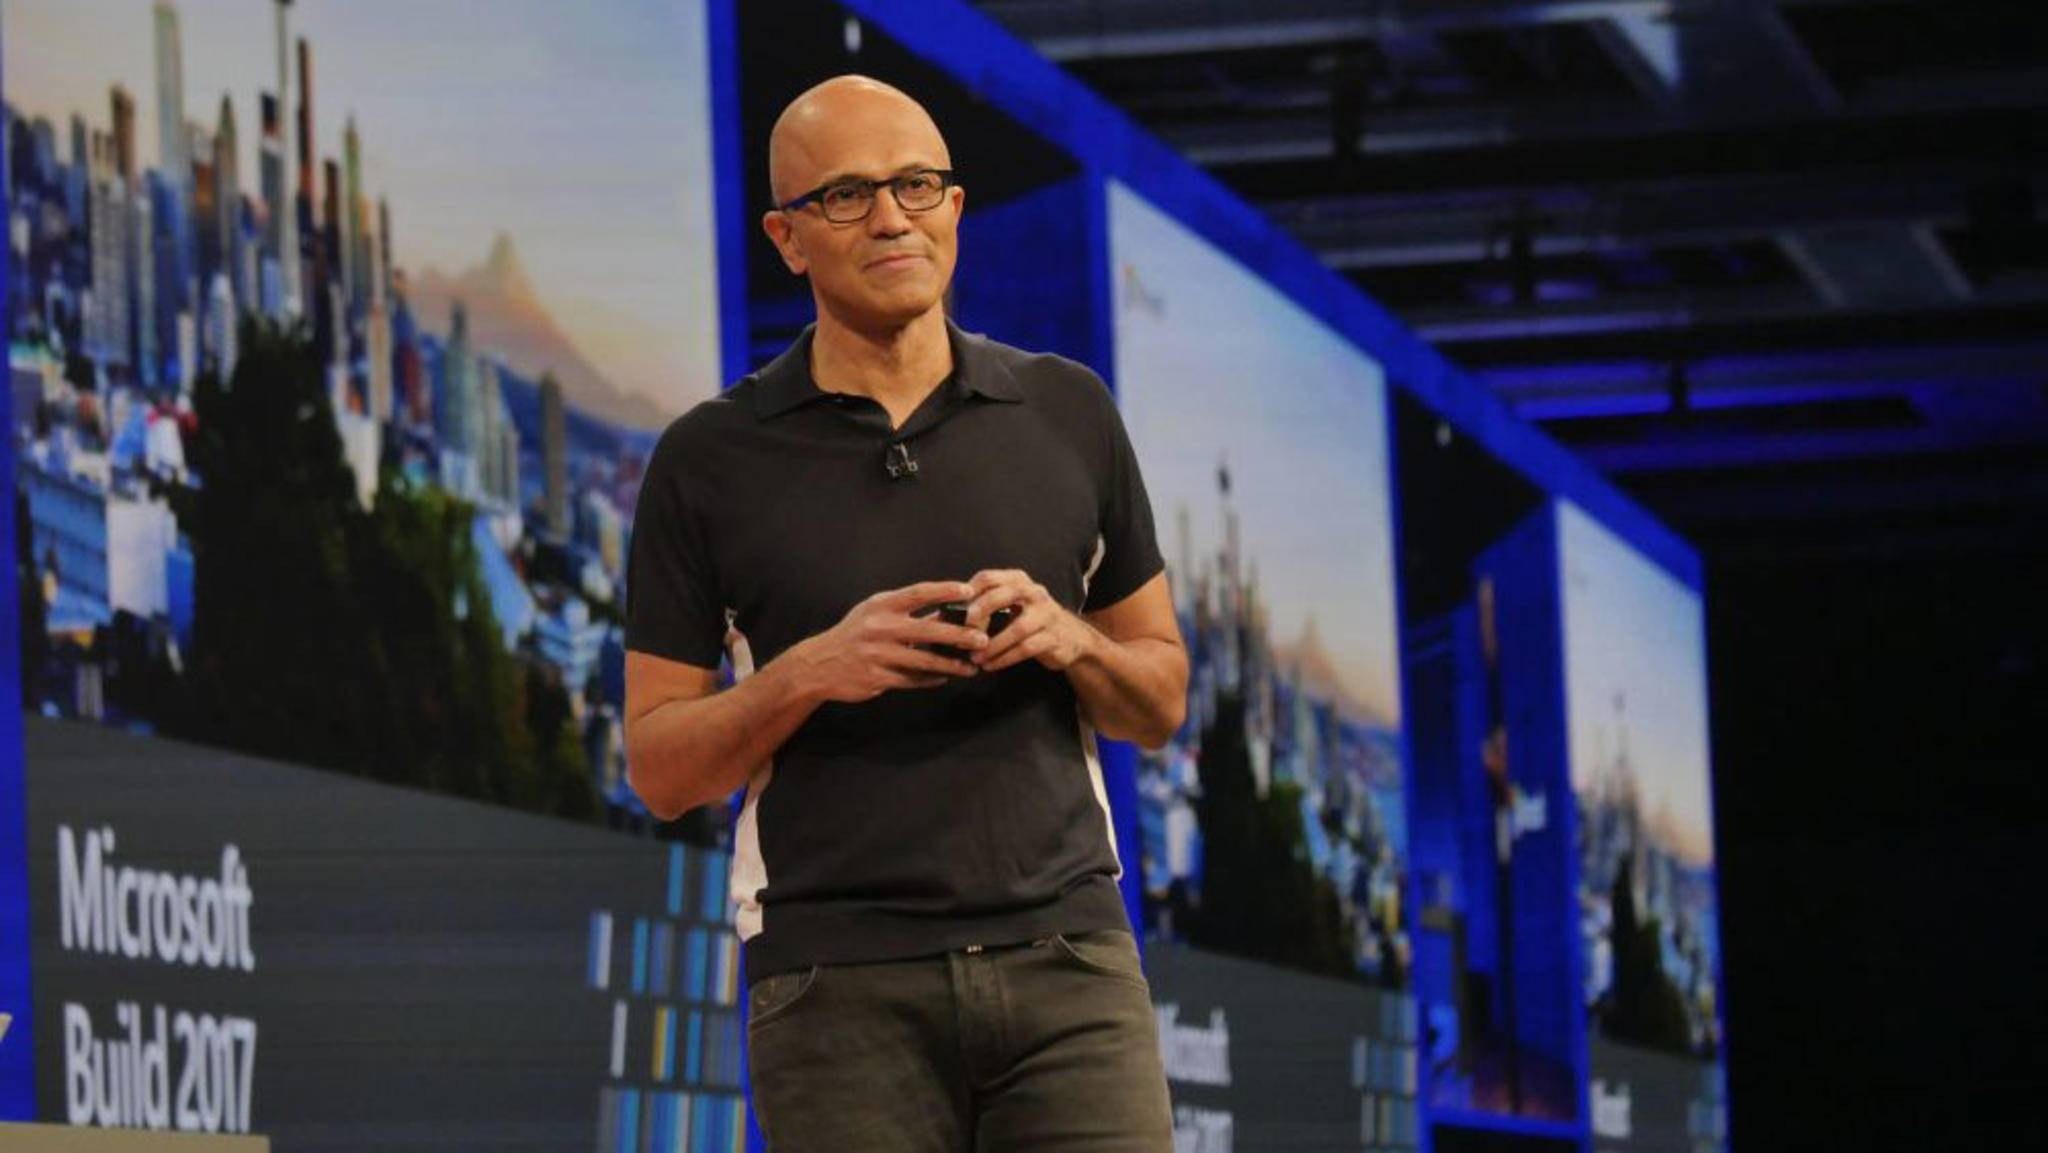 Microsoft-Boss Satya Nadella kündigt neue Windows 10-Features an.